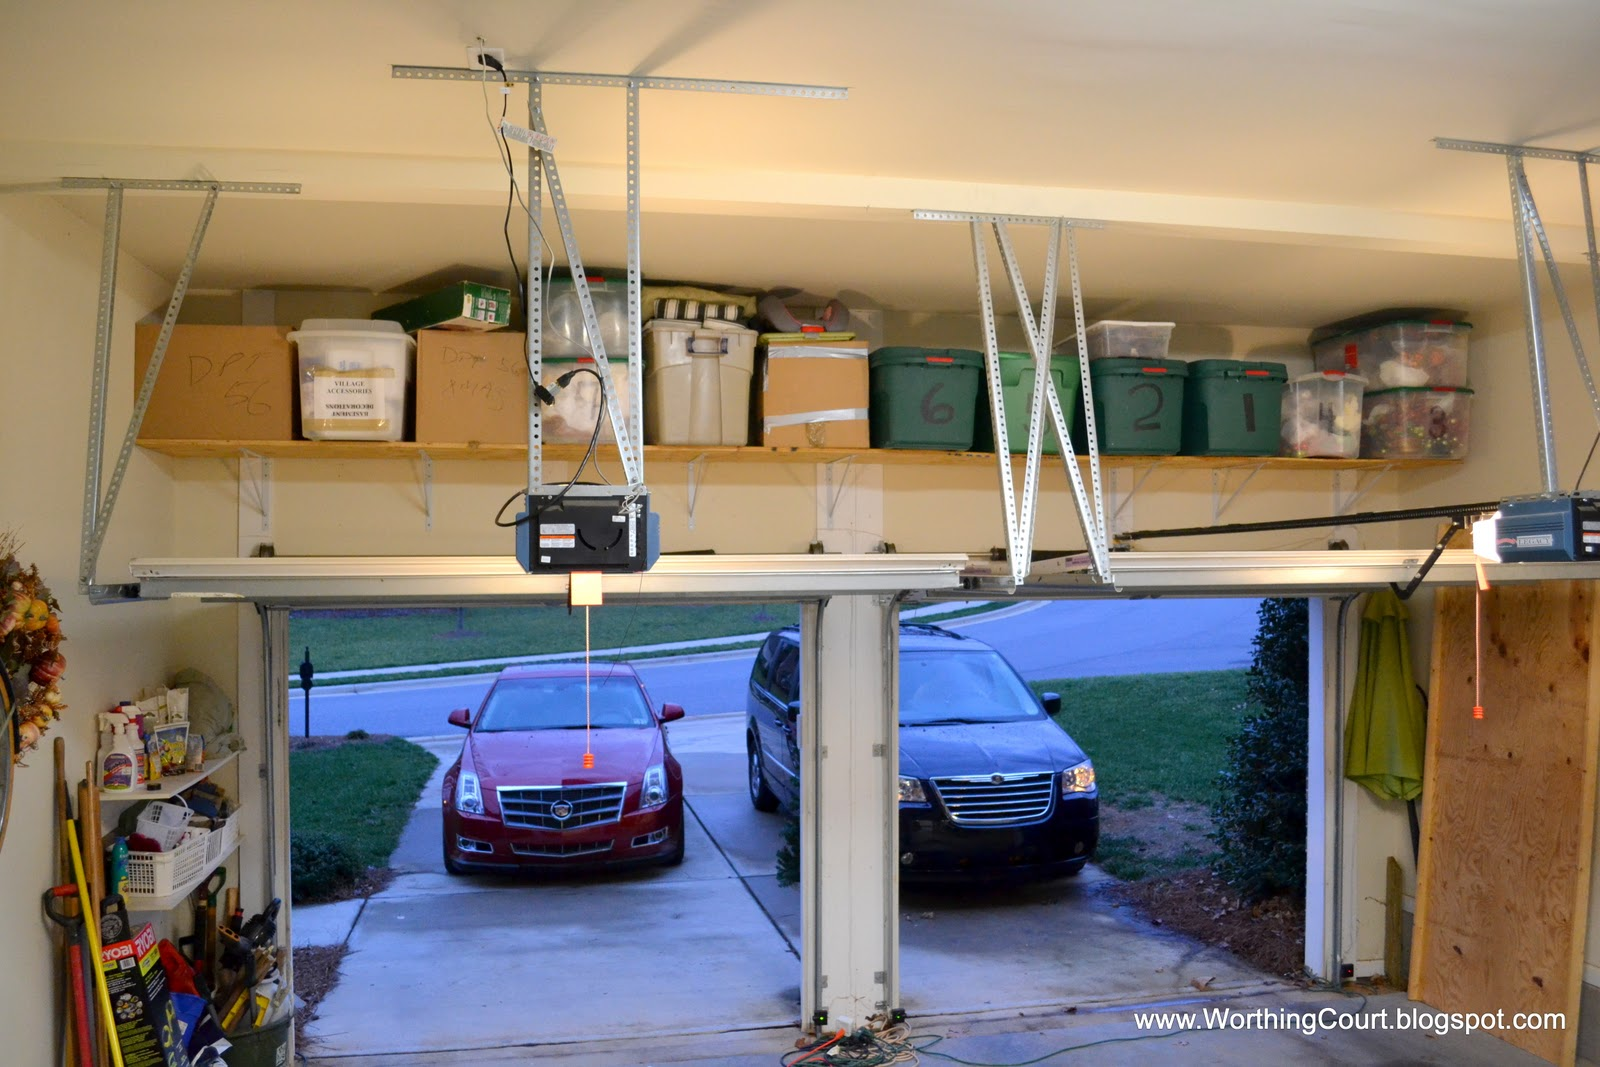 Garage door christmas decorating ideas - How To Organize Christmas Decorations Via Worthing Court Blog